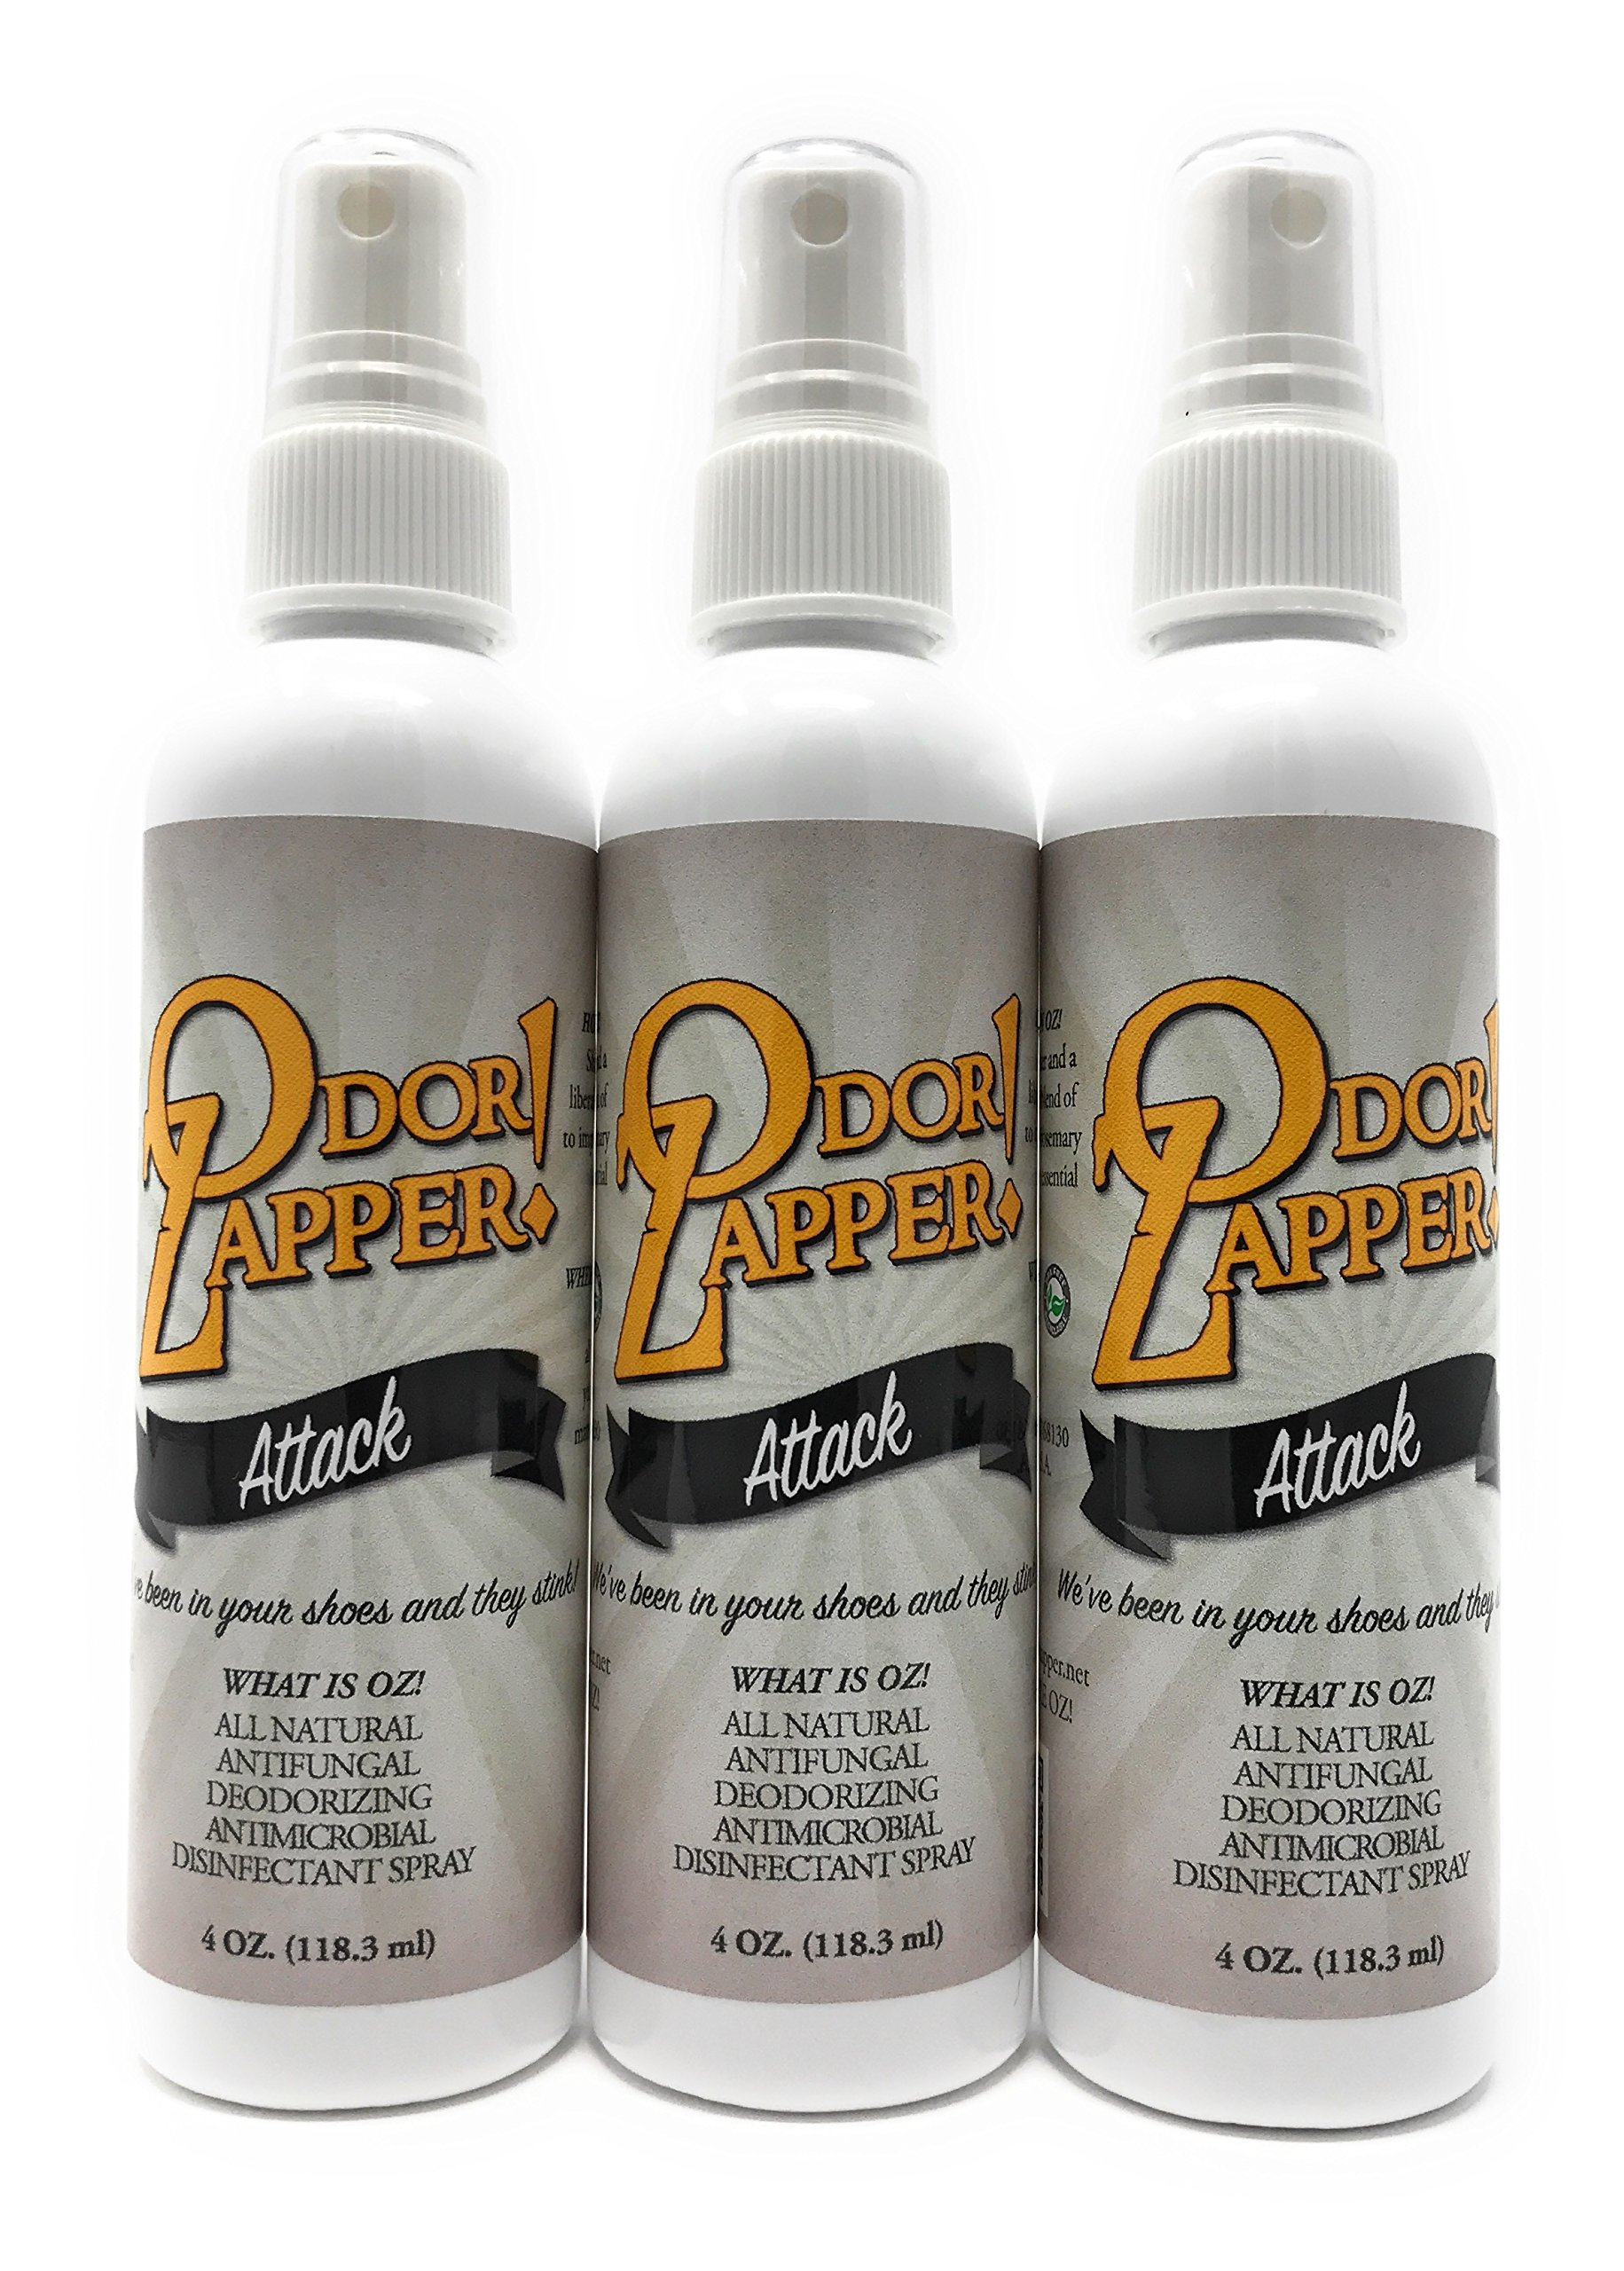 Odor Zapper Disinfectant Spray - For use in Shoes, Gym Bags, Yoga Mats and More! - ''Attack'' 3 Pack